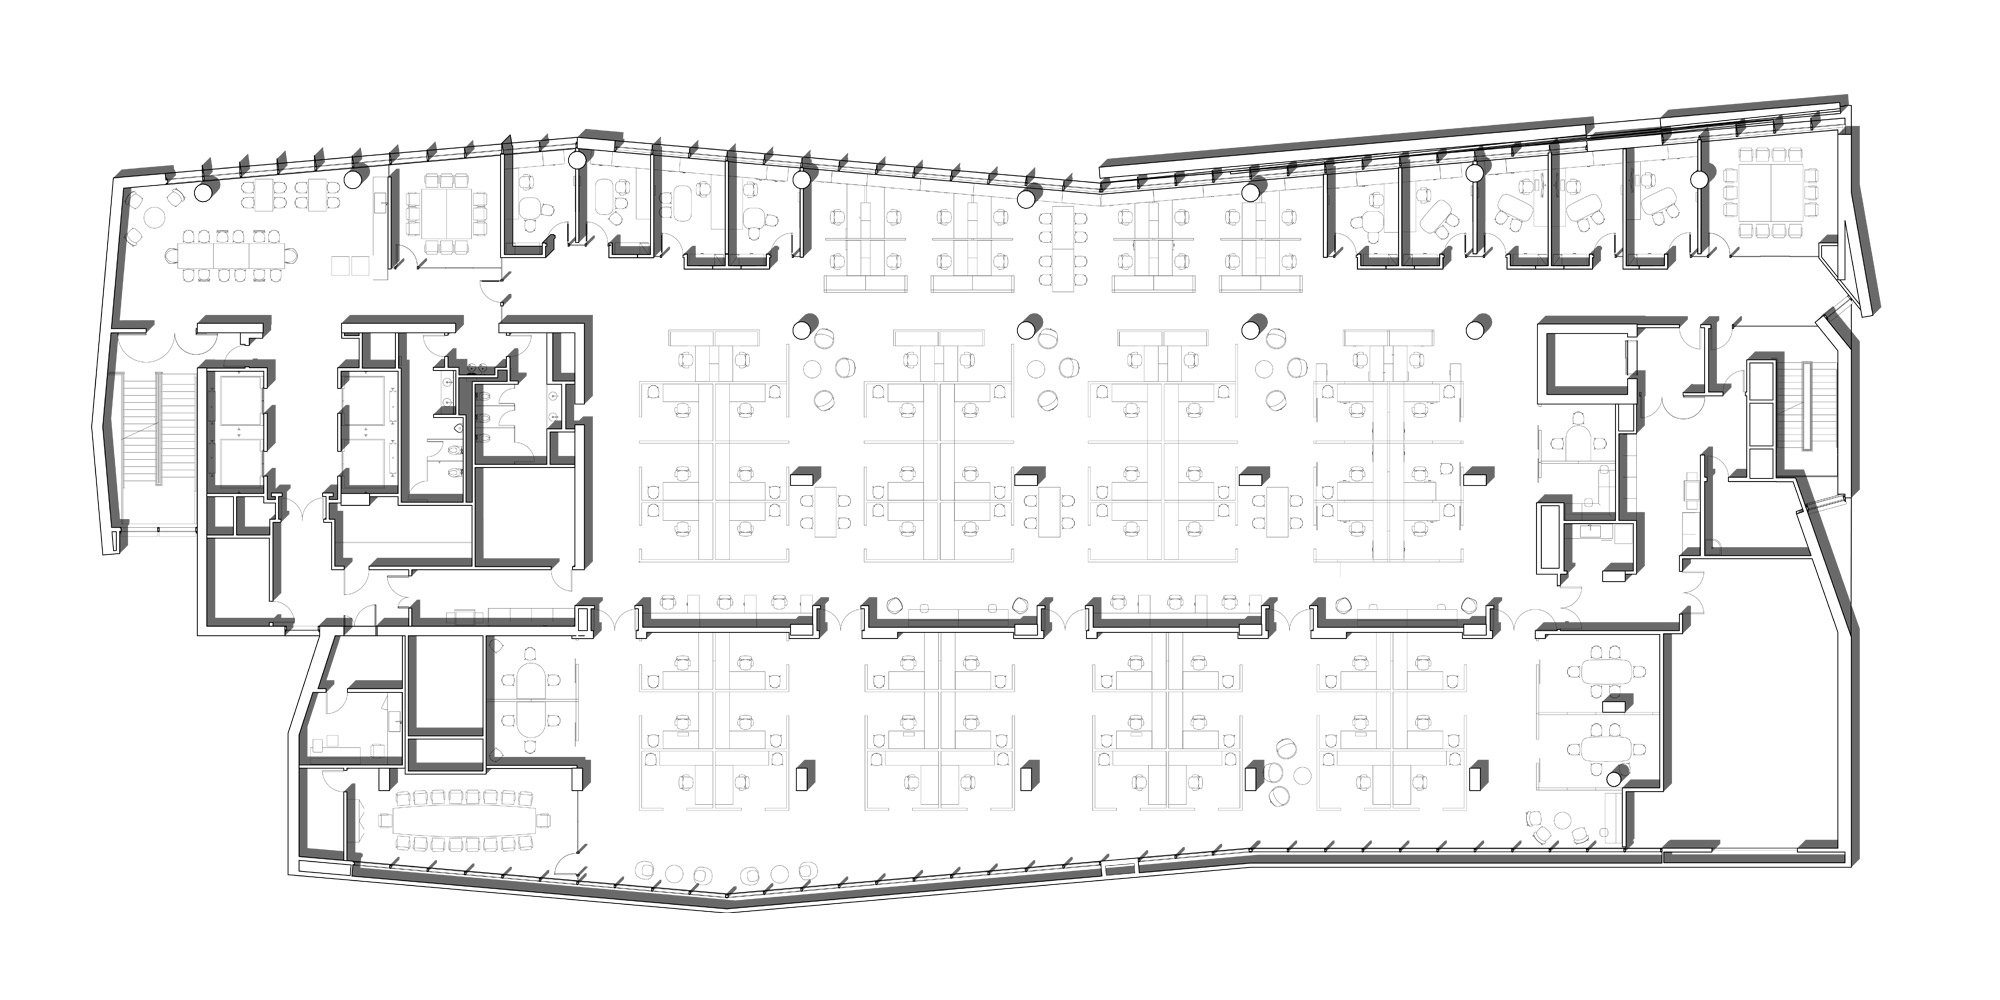 9th level plan © CO Architects